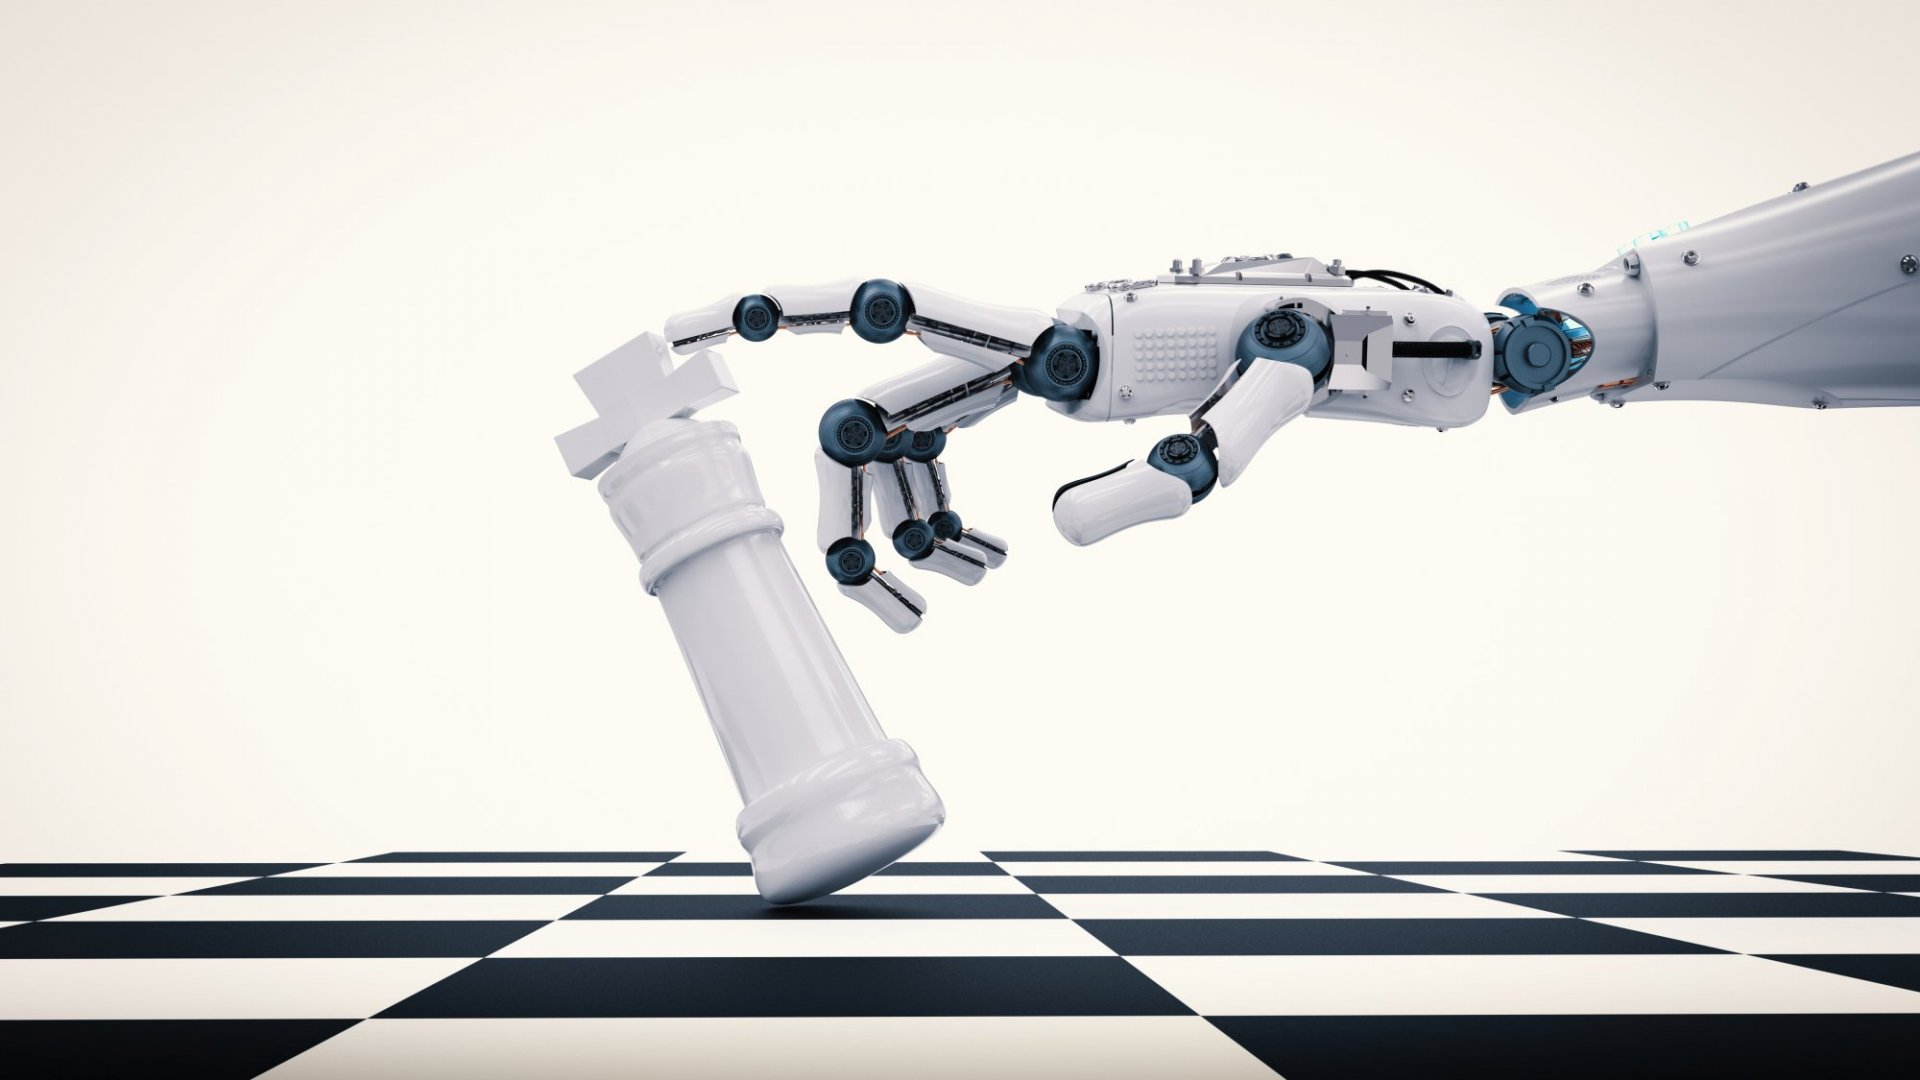 Is Artificial Intelligence Going to Take Your Job or End the World First?